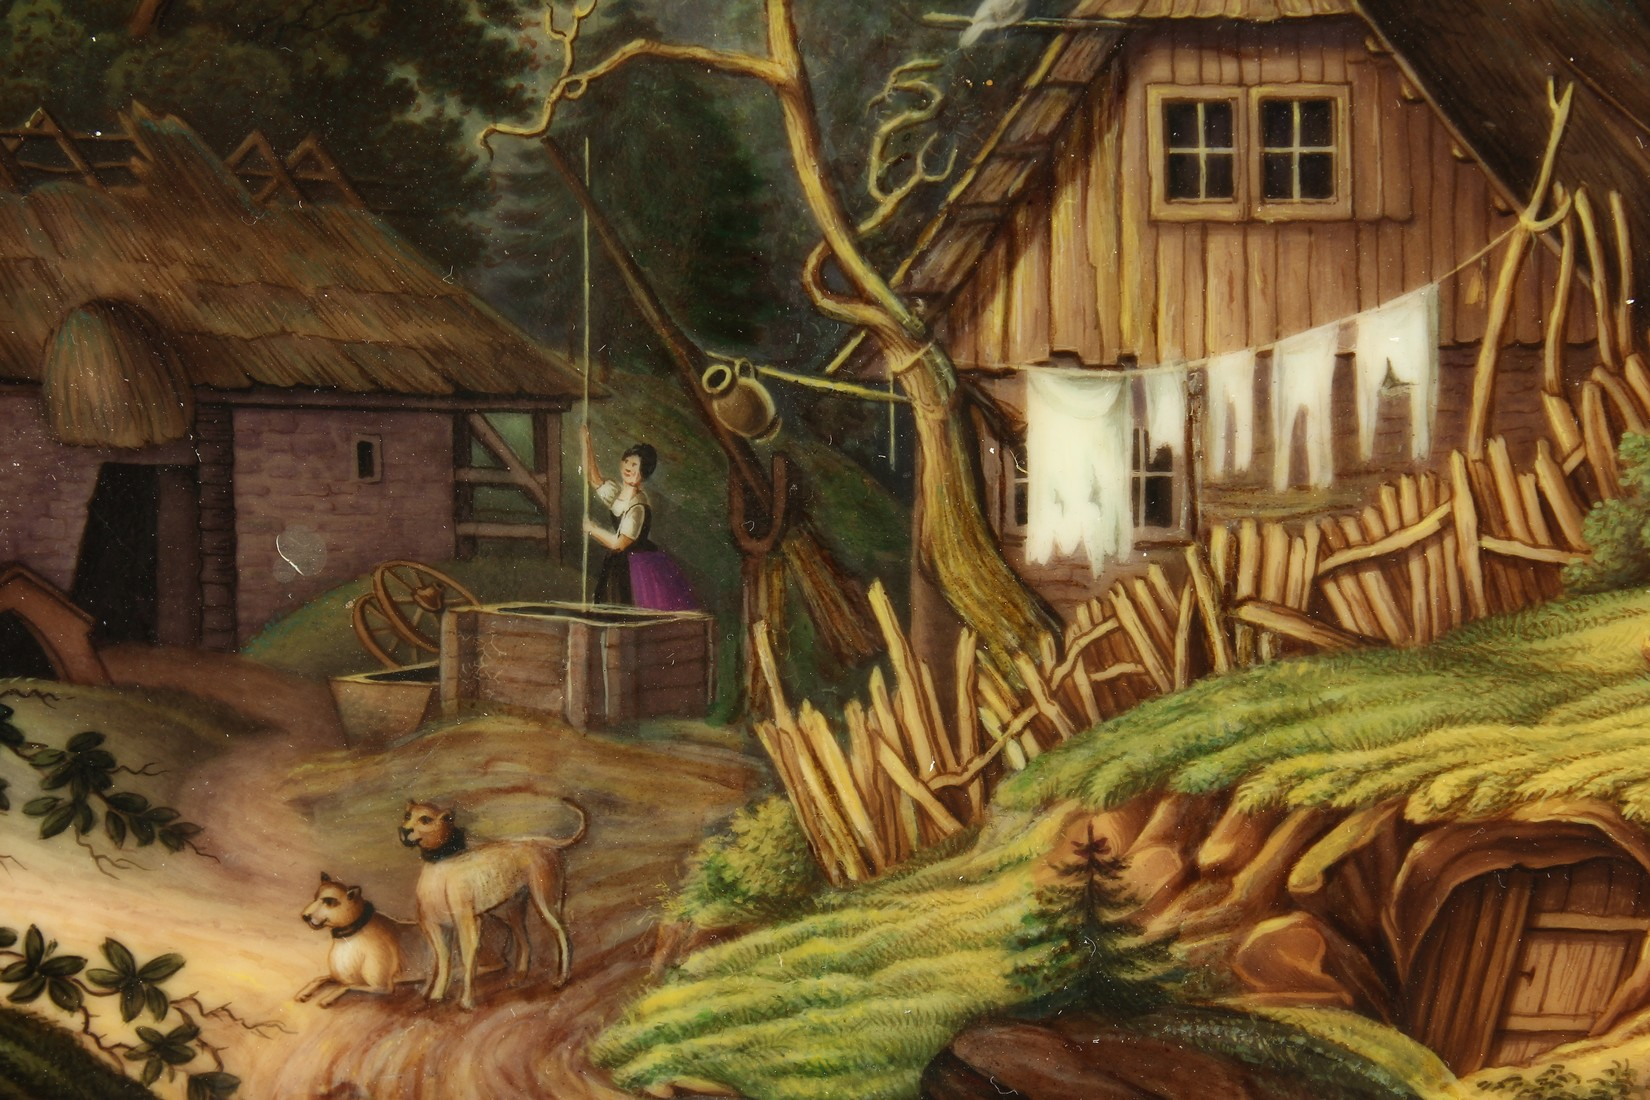 A GOOD K. P. M. PORCELAIN PLAQUE, rural scene, a woman hanging out the washing, a castle amidst - Image 2 of 4